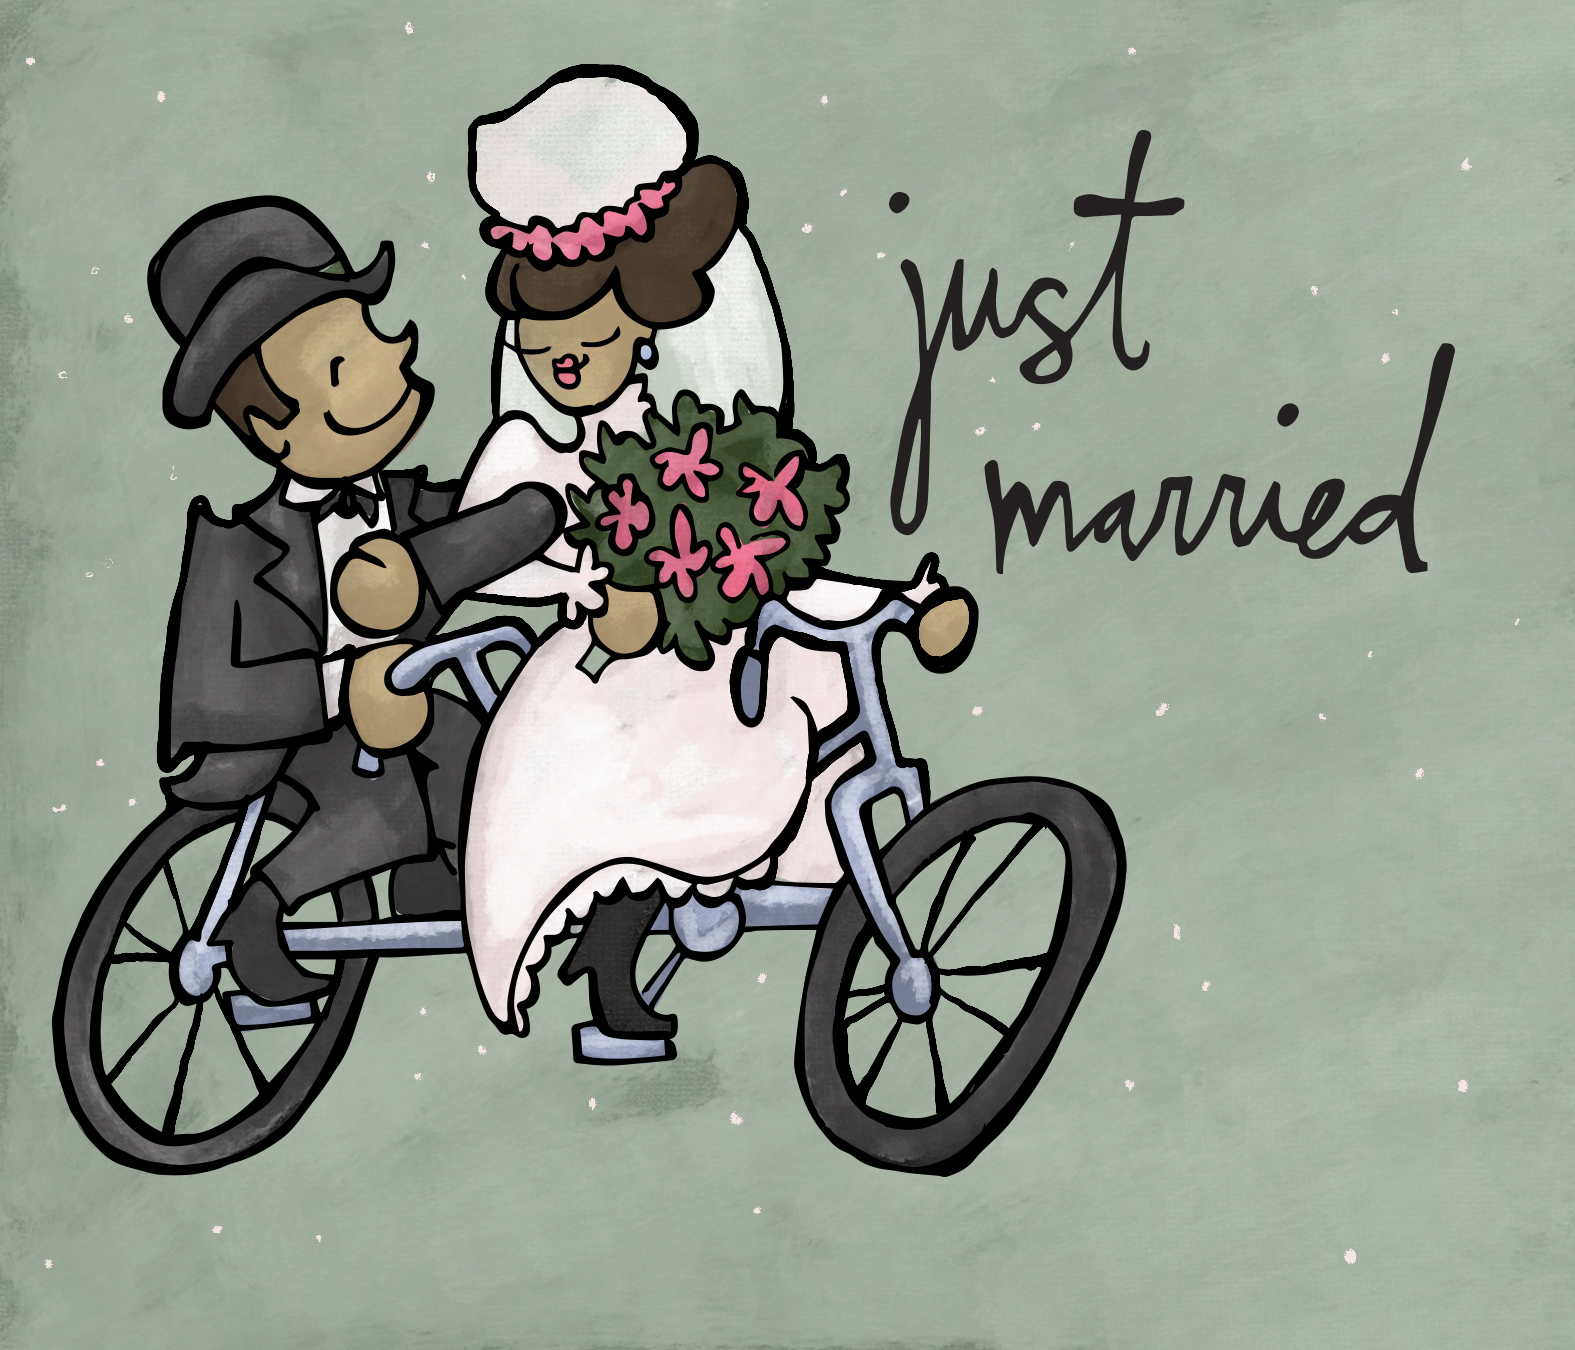 Just Married Bike.jpg